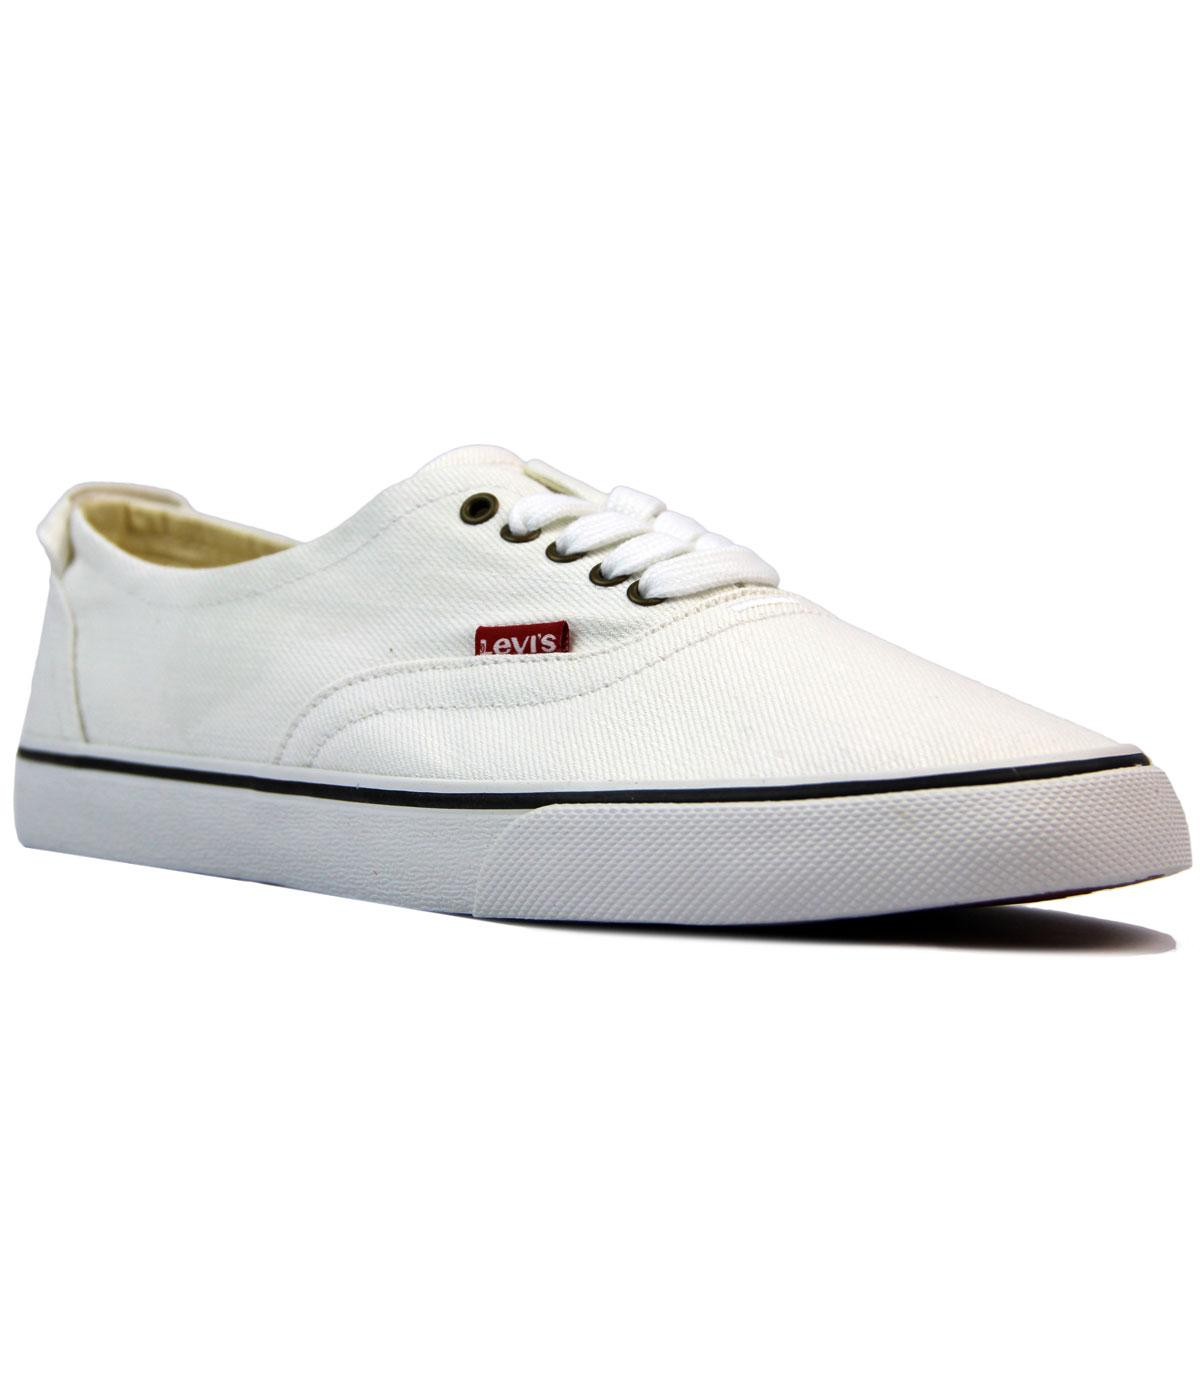 Levi's® Retro 1970s White Canvas Red Tab Sneakers